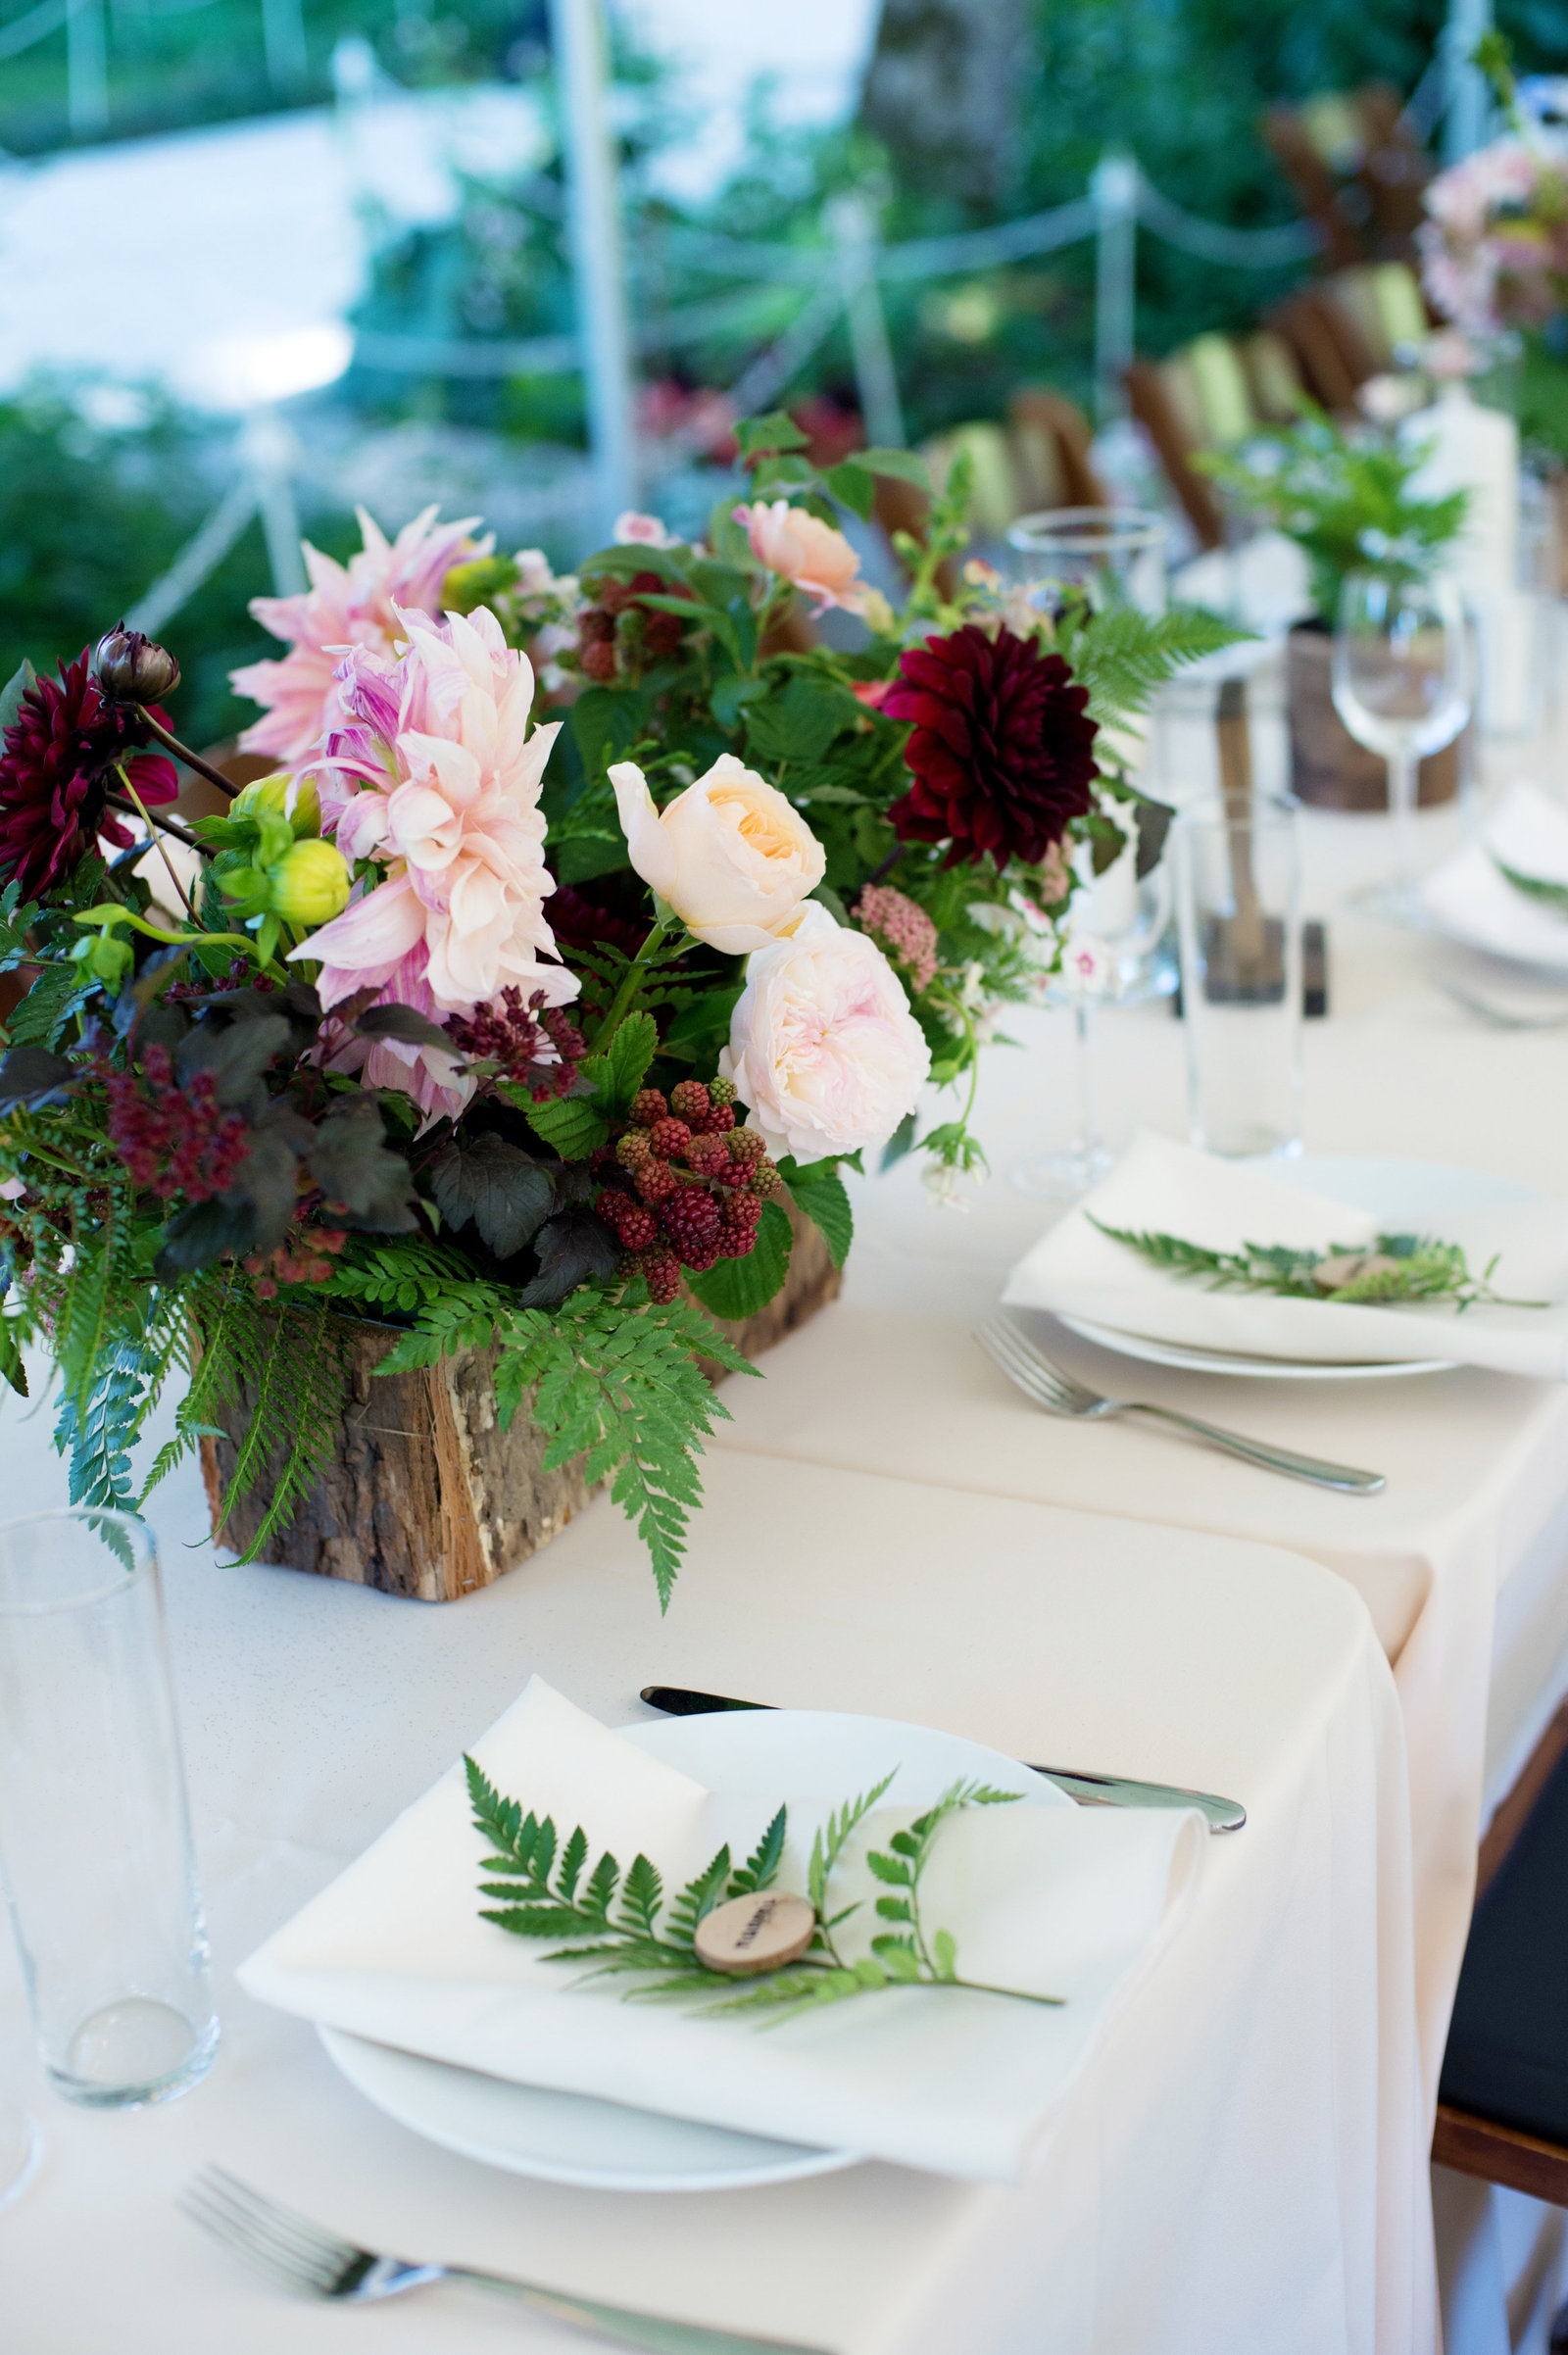 fern leaves and small wooden discs for table decor at wedding